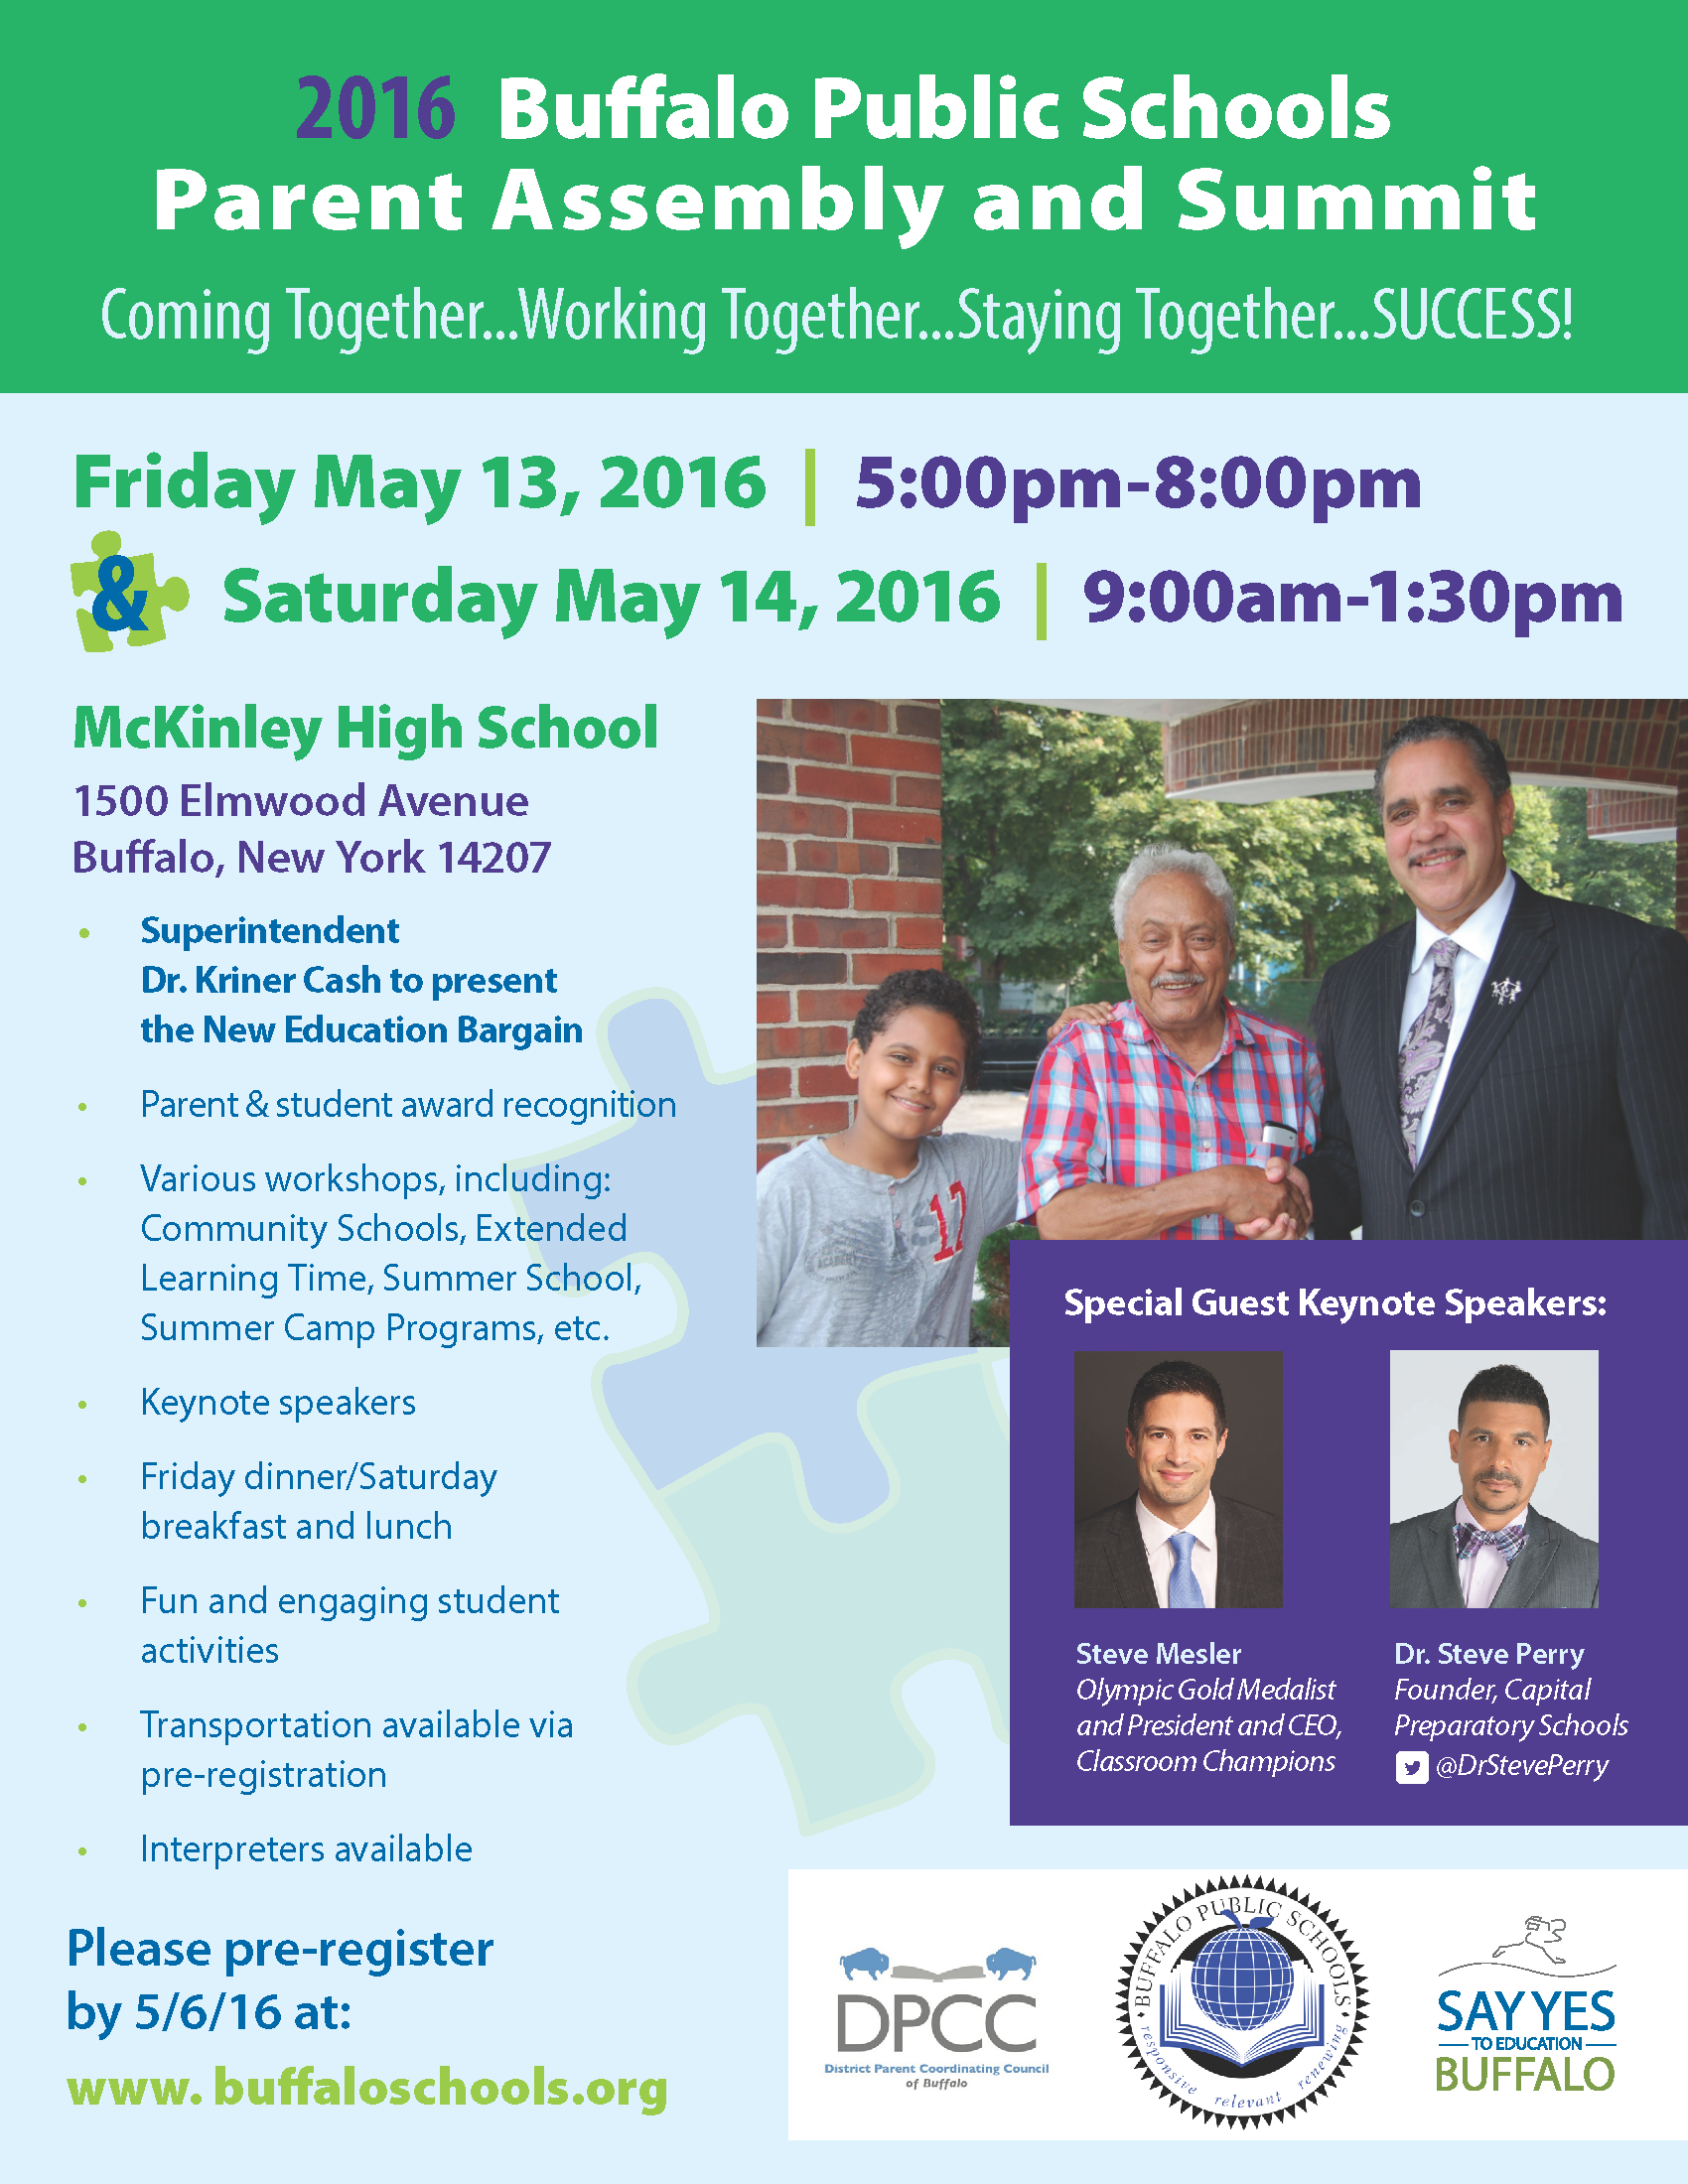 BPS_Parent_Assembly_and_Summit_flyer_(2).png